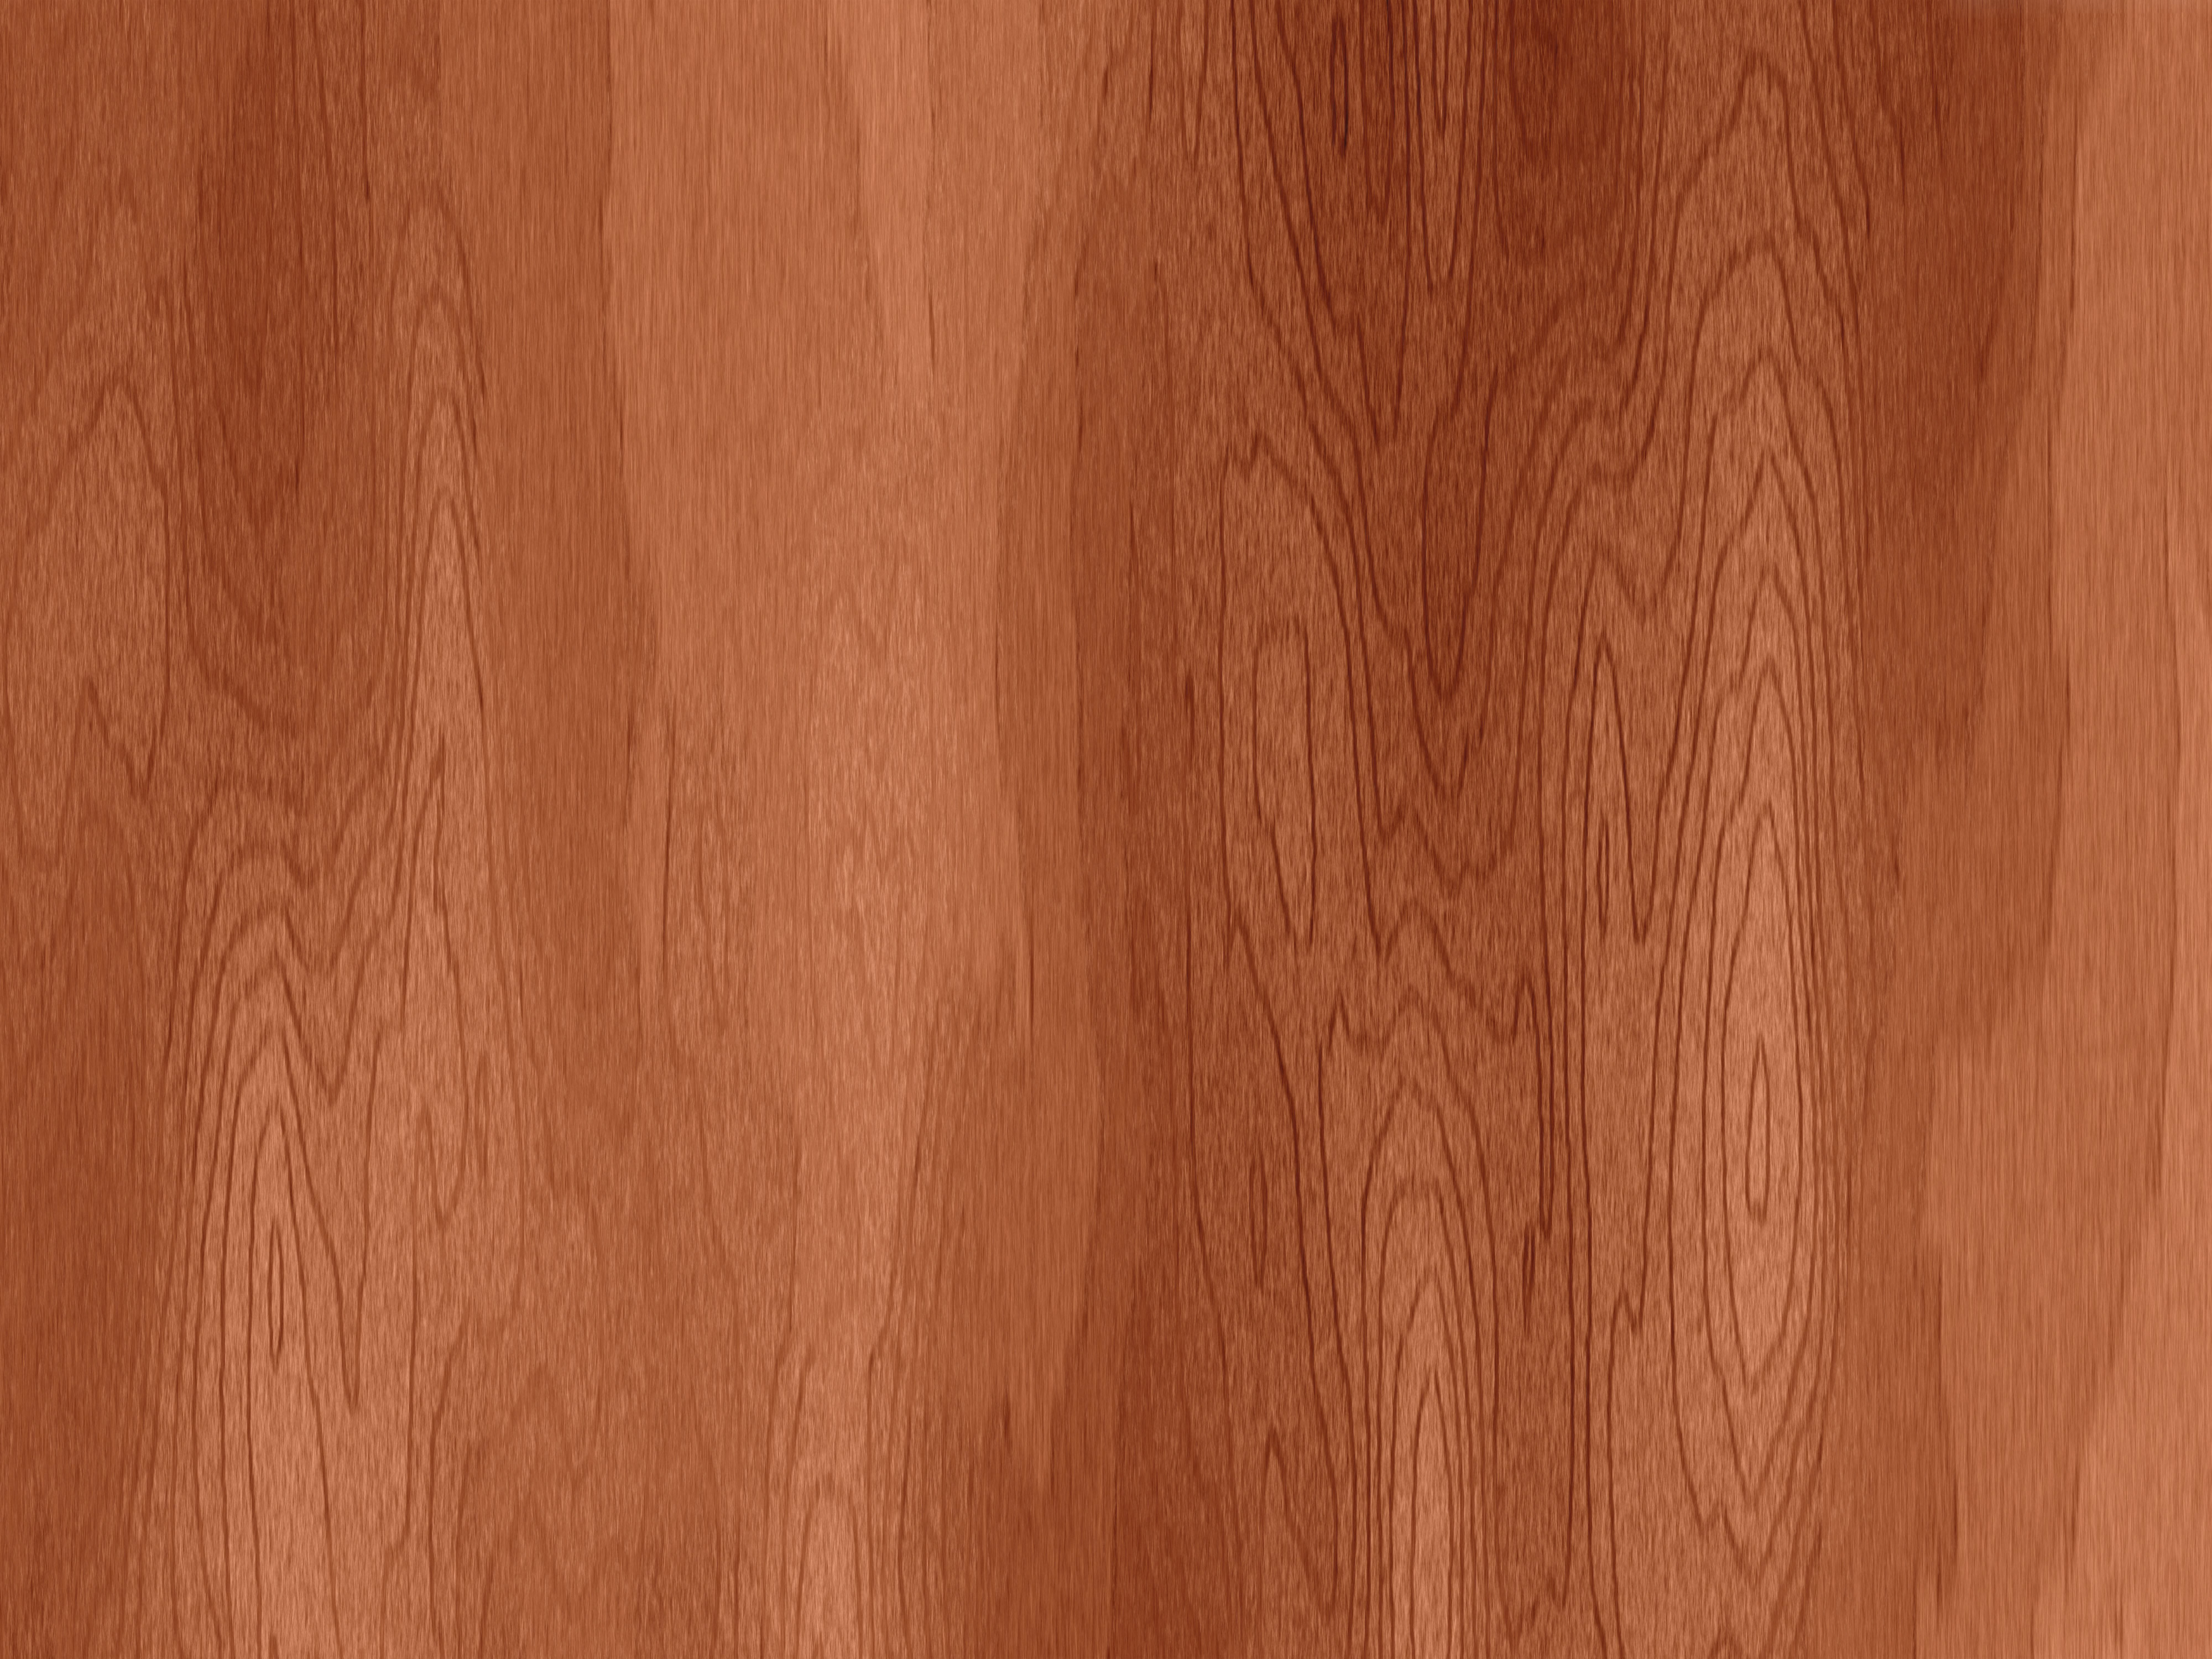 Light wood texture - Light Brown Wooden Texture Wood Texture Wood Download Photo Background